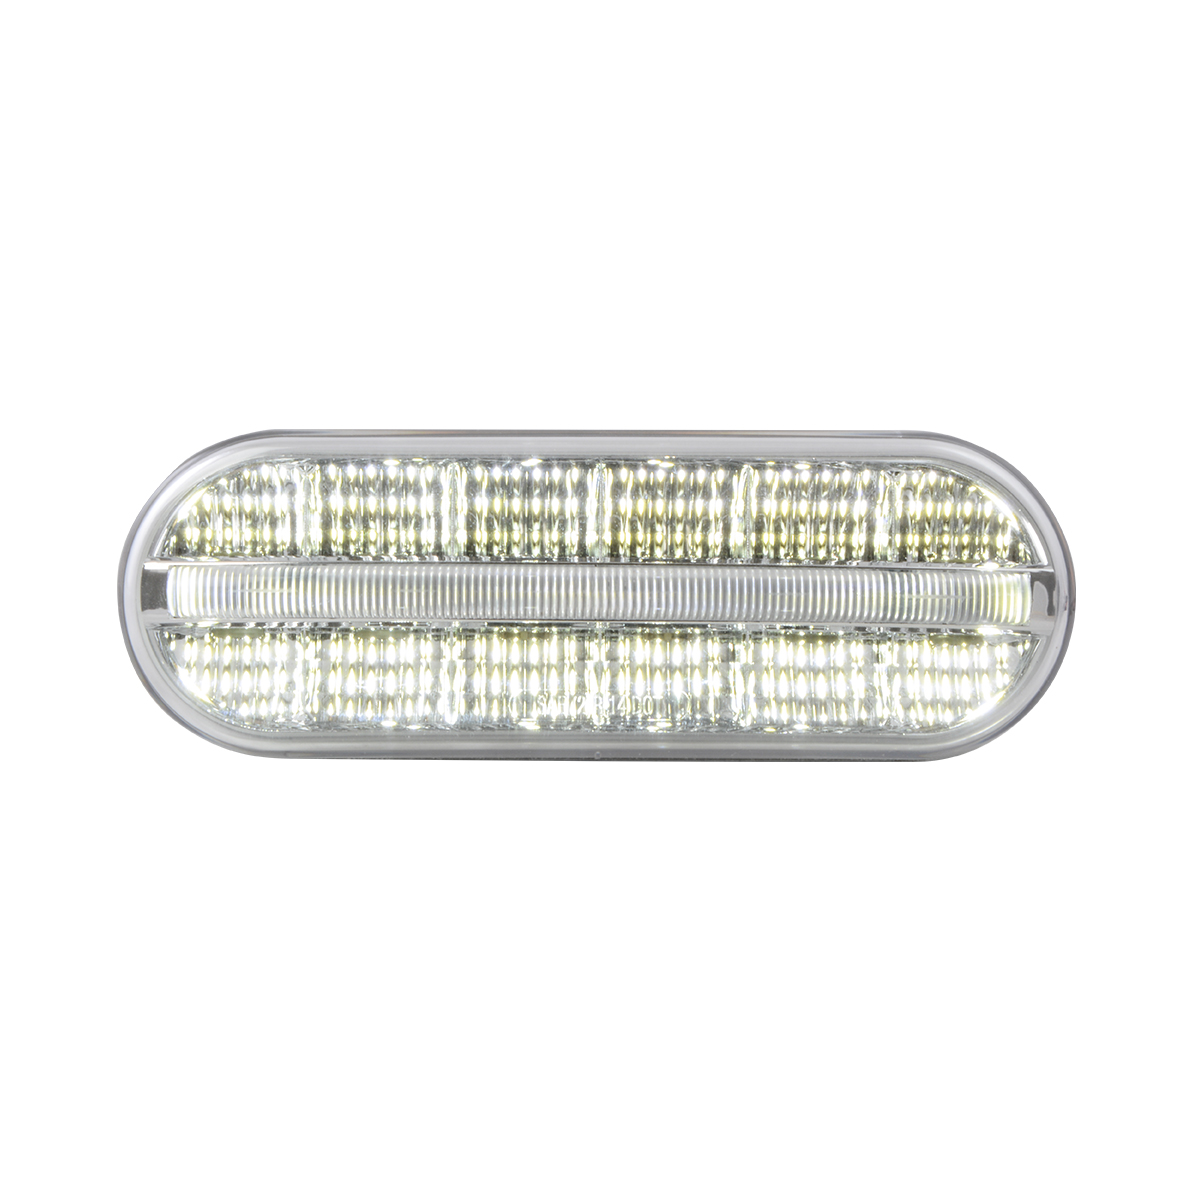 74854 Oval Prime Spyder LED Light in White/Clear